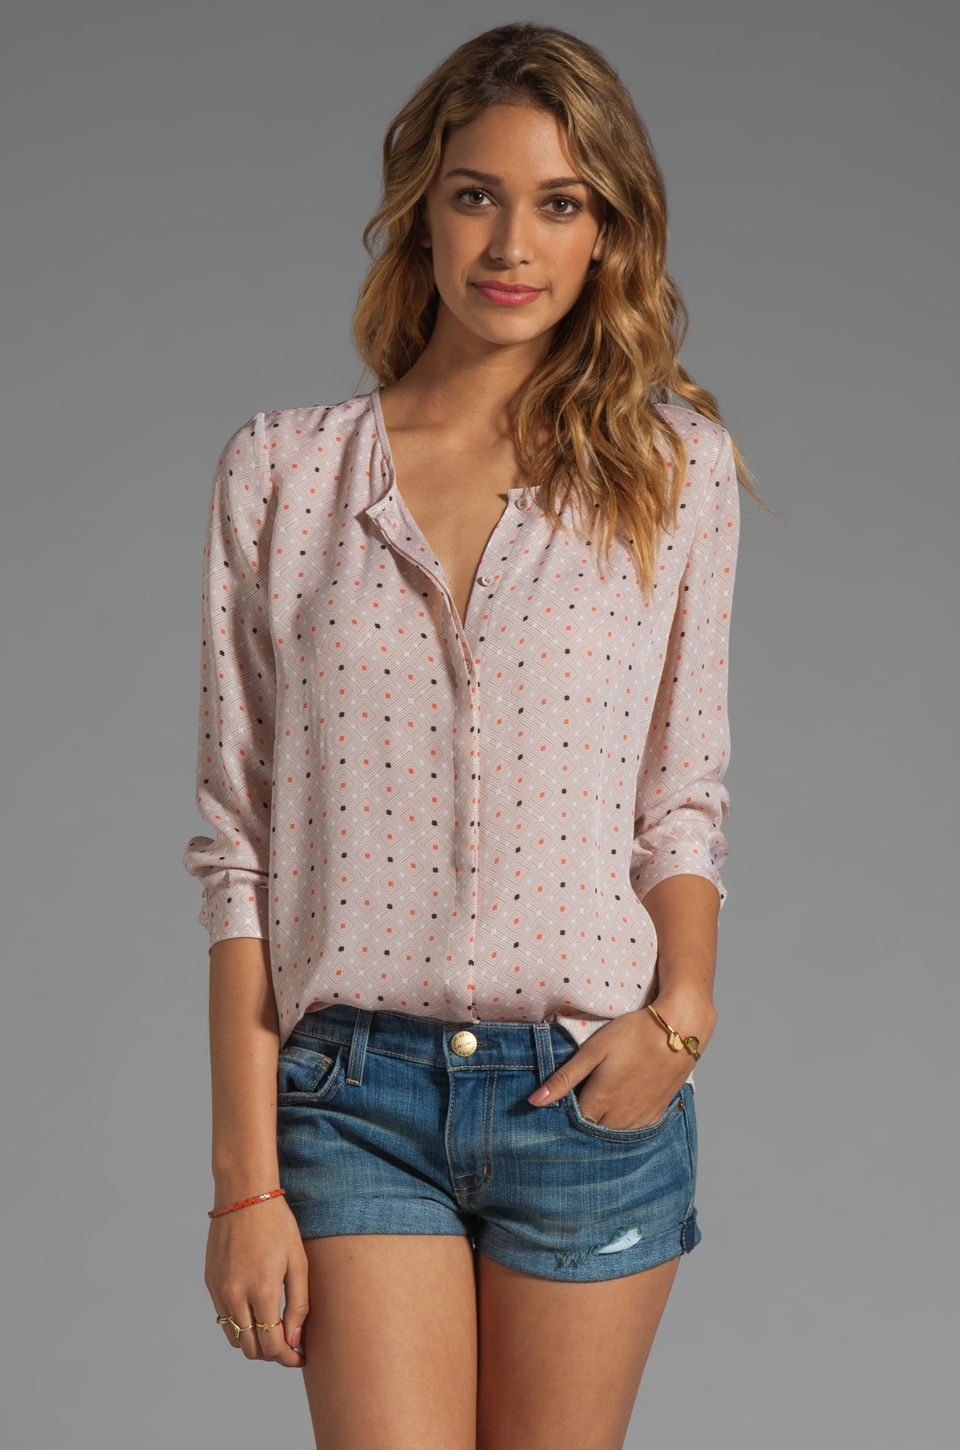 Joie Wilmington Polka Dot Blouse in Dusty Pink Sand